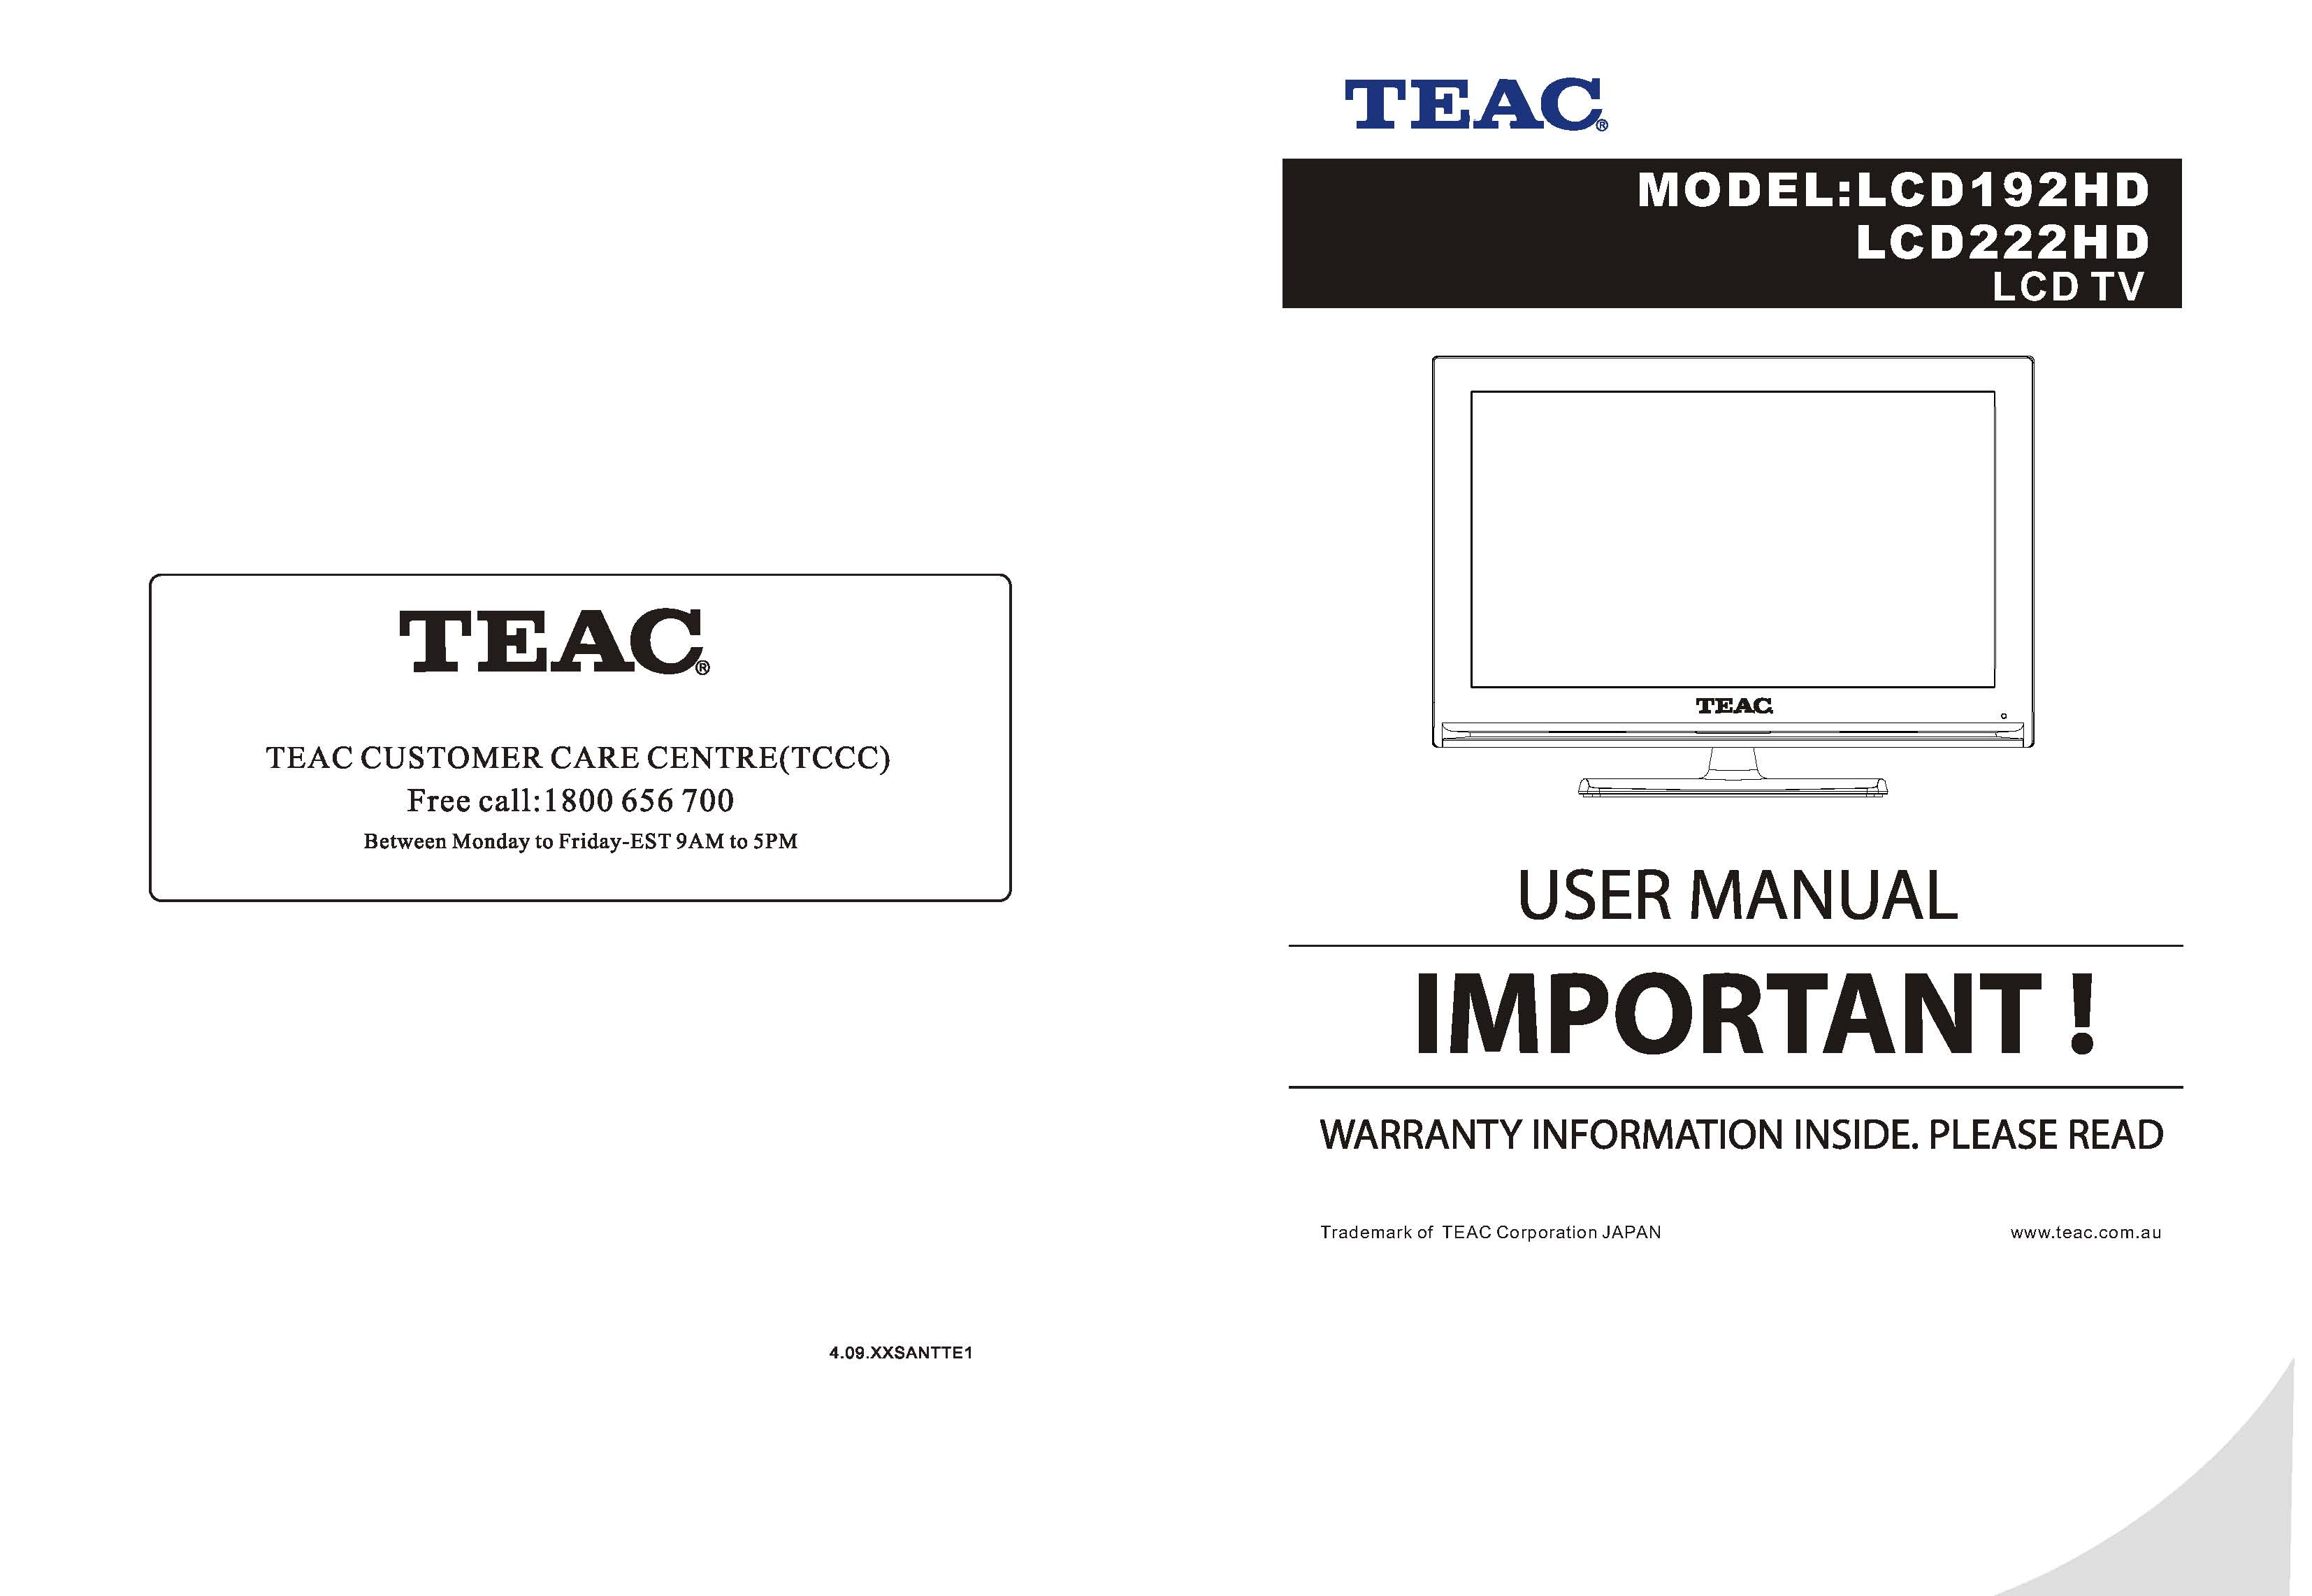 TEAC LCD192HD Instruction Manual